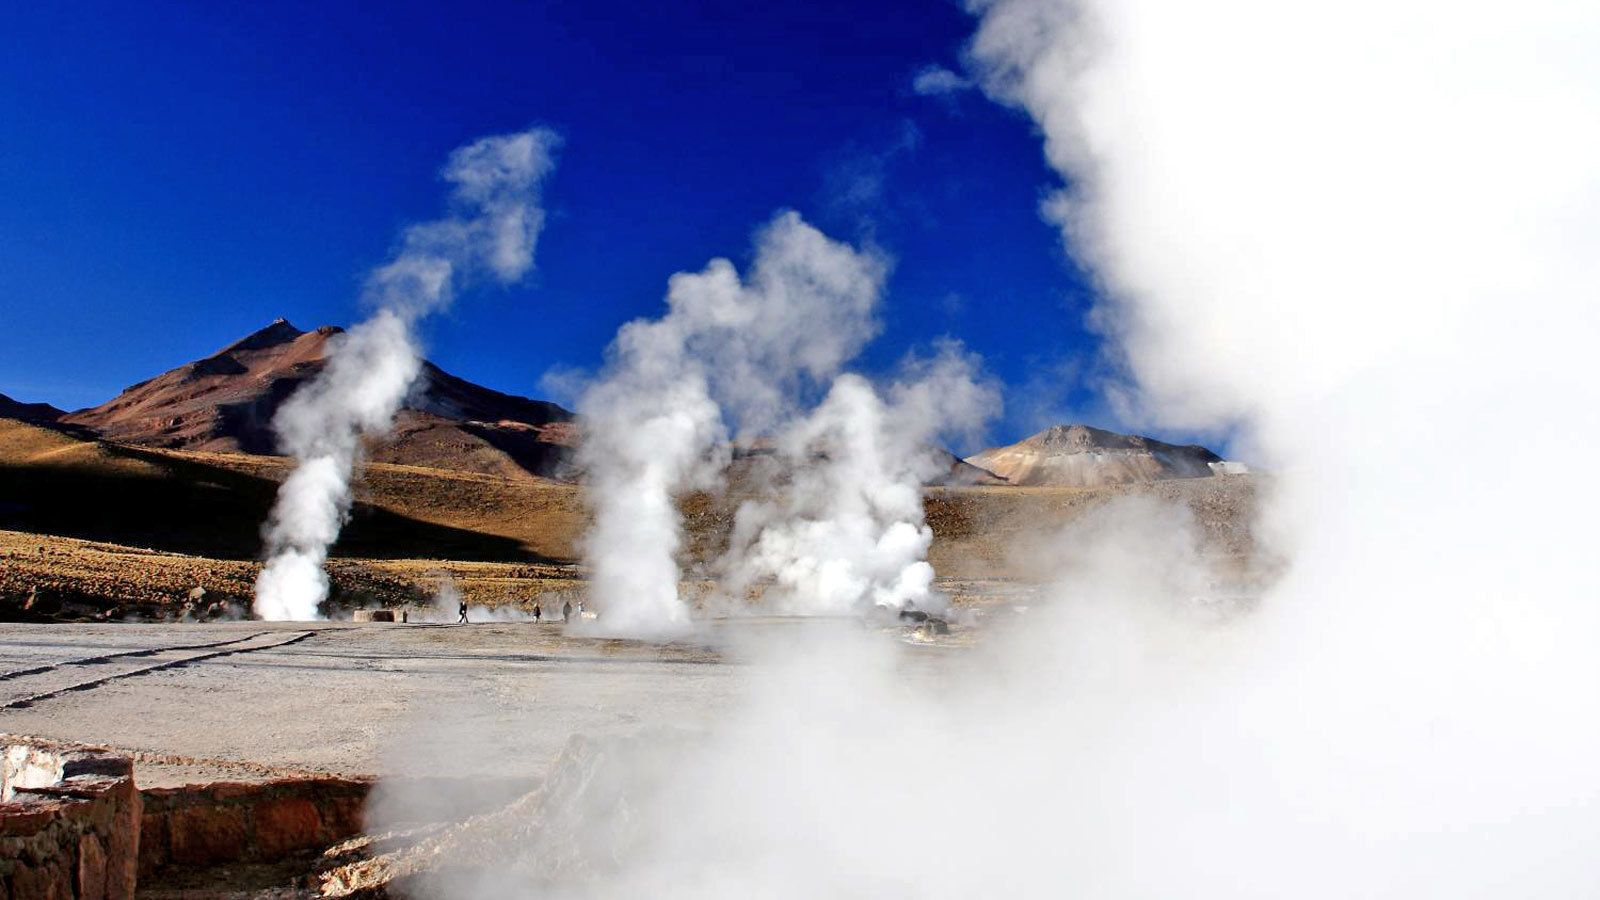 Steam billowing from multiple geysers in Chile